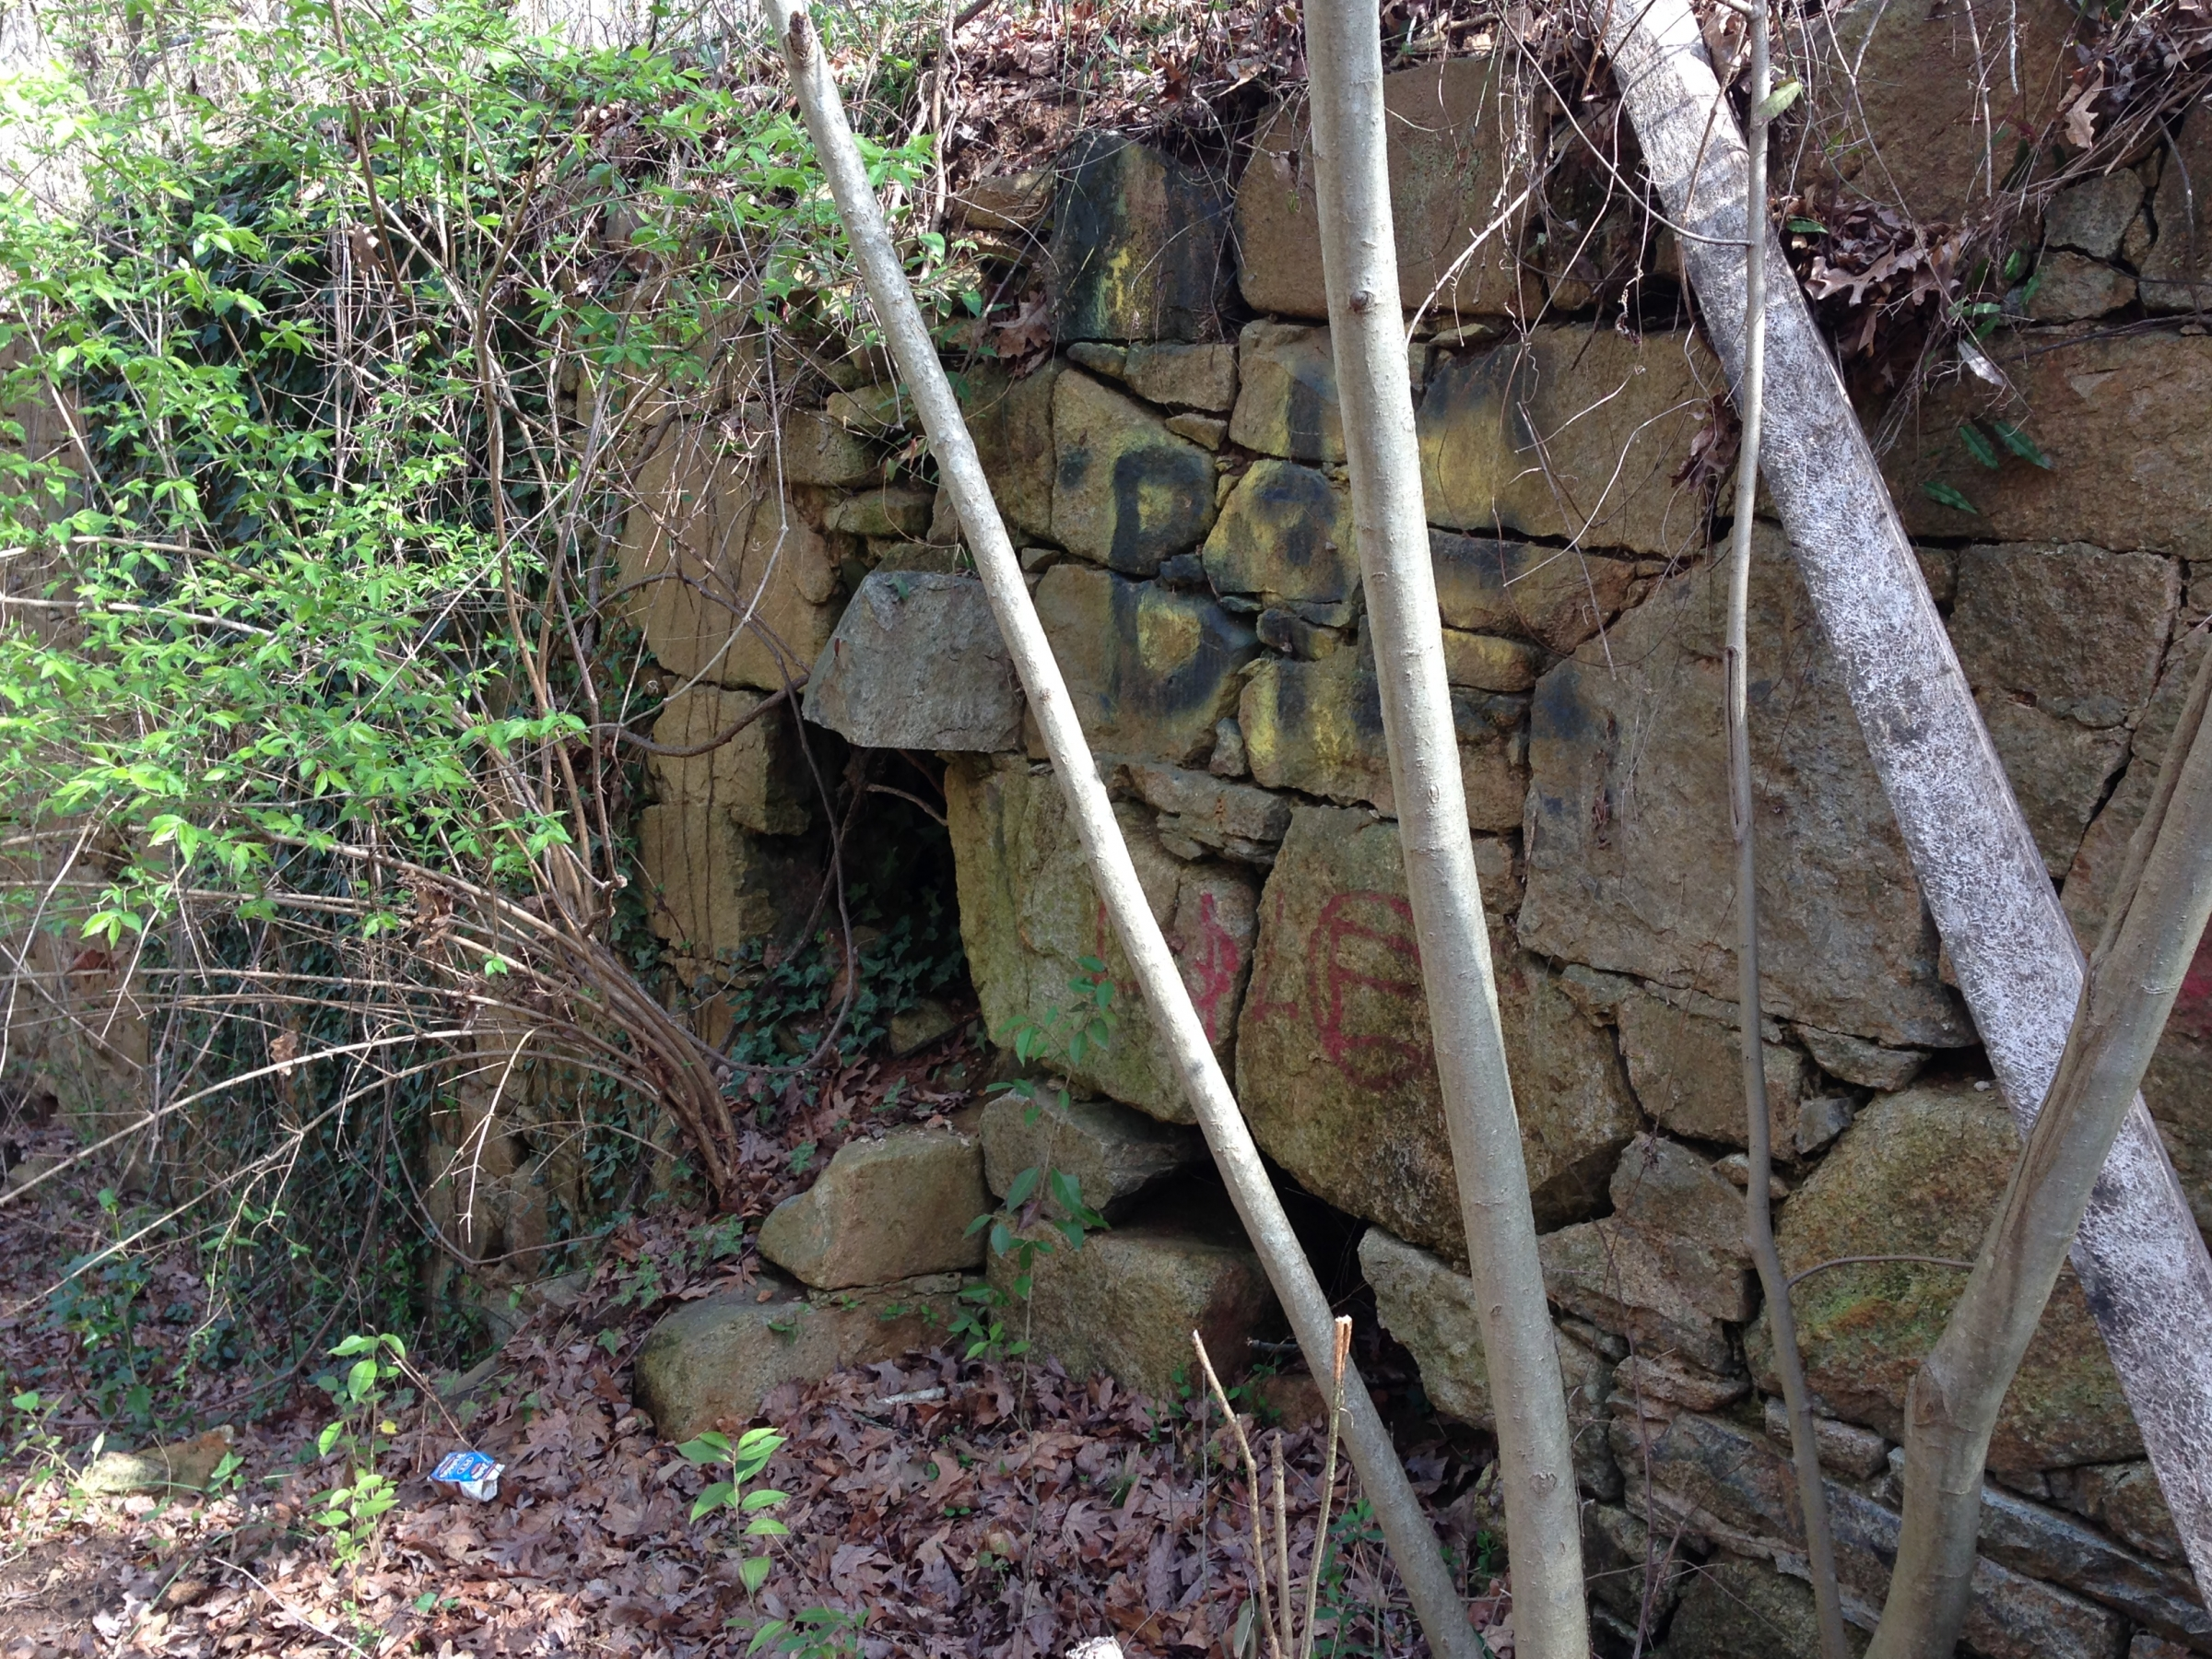 A few rock walls, the foundations, are all that remain of a mill built in the 1850s near Briar Creek. Photo: Mary Newsom